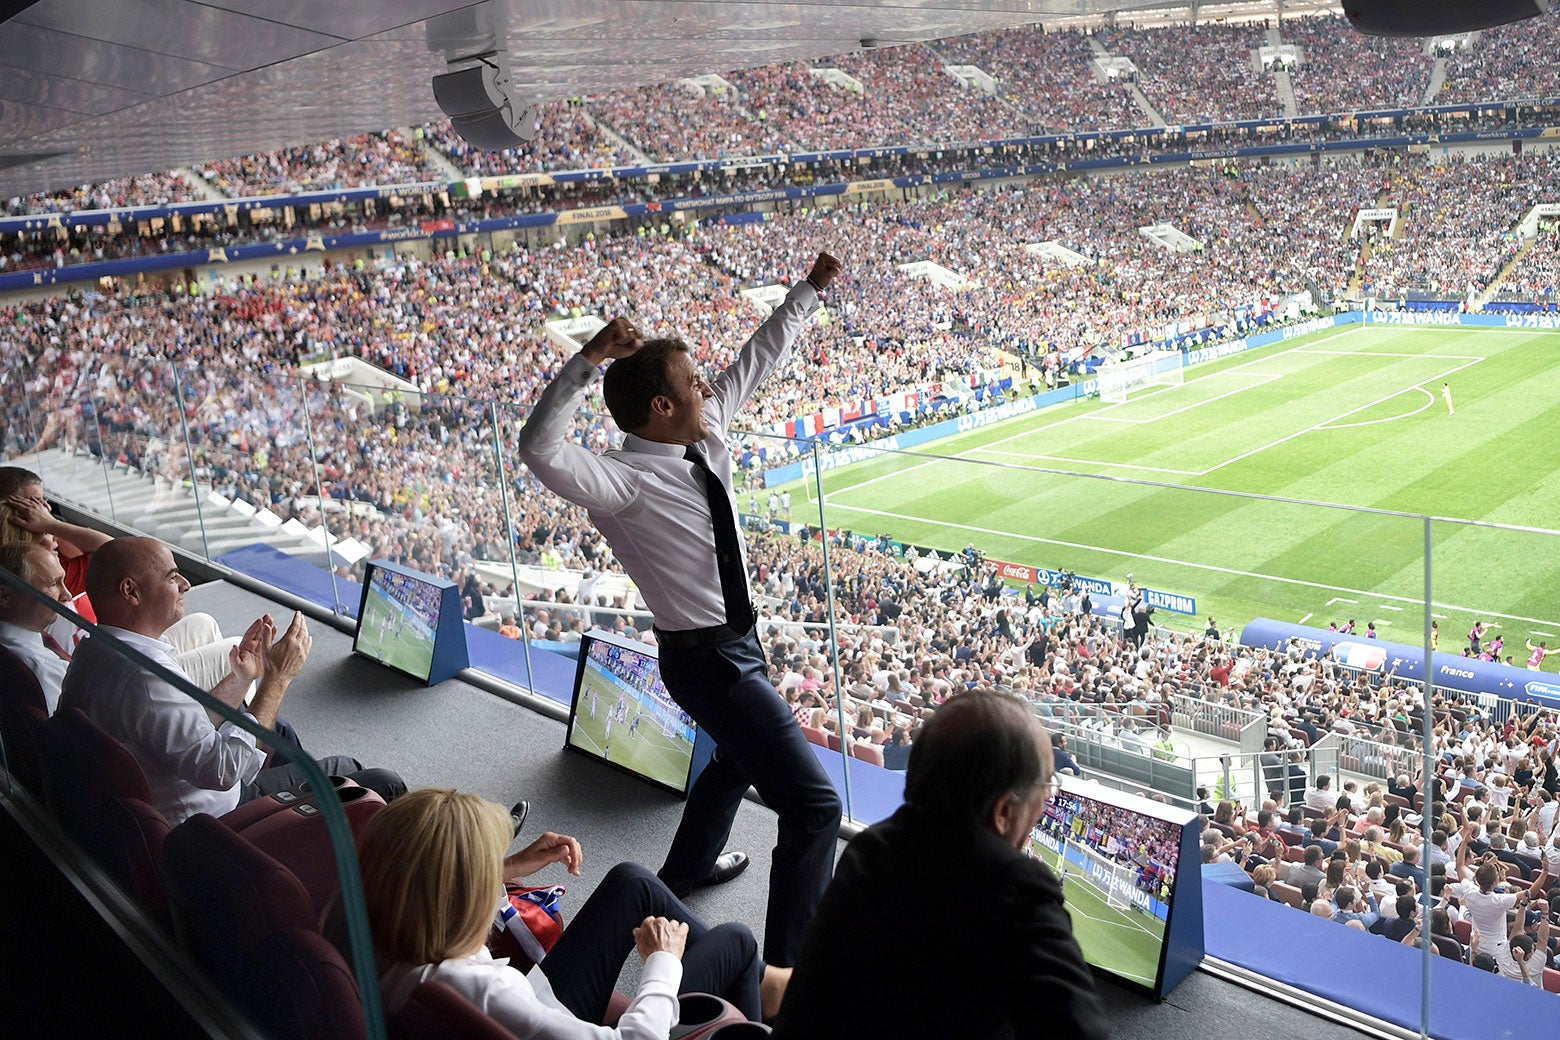 slate.com - Daniel Politi - This Photo of a Celebrating Macron Captures the Excitement of France's World Cup Win